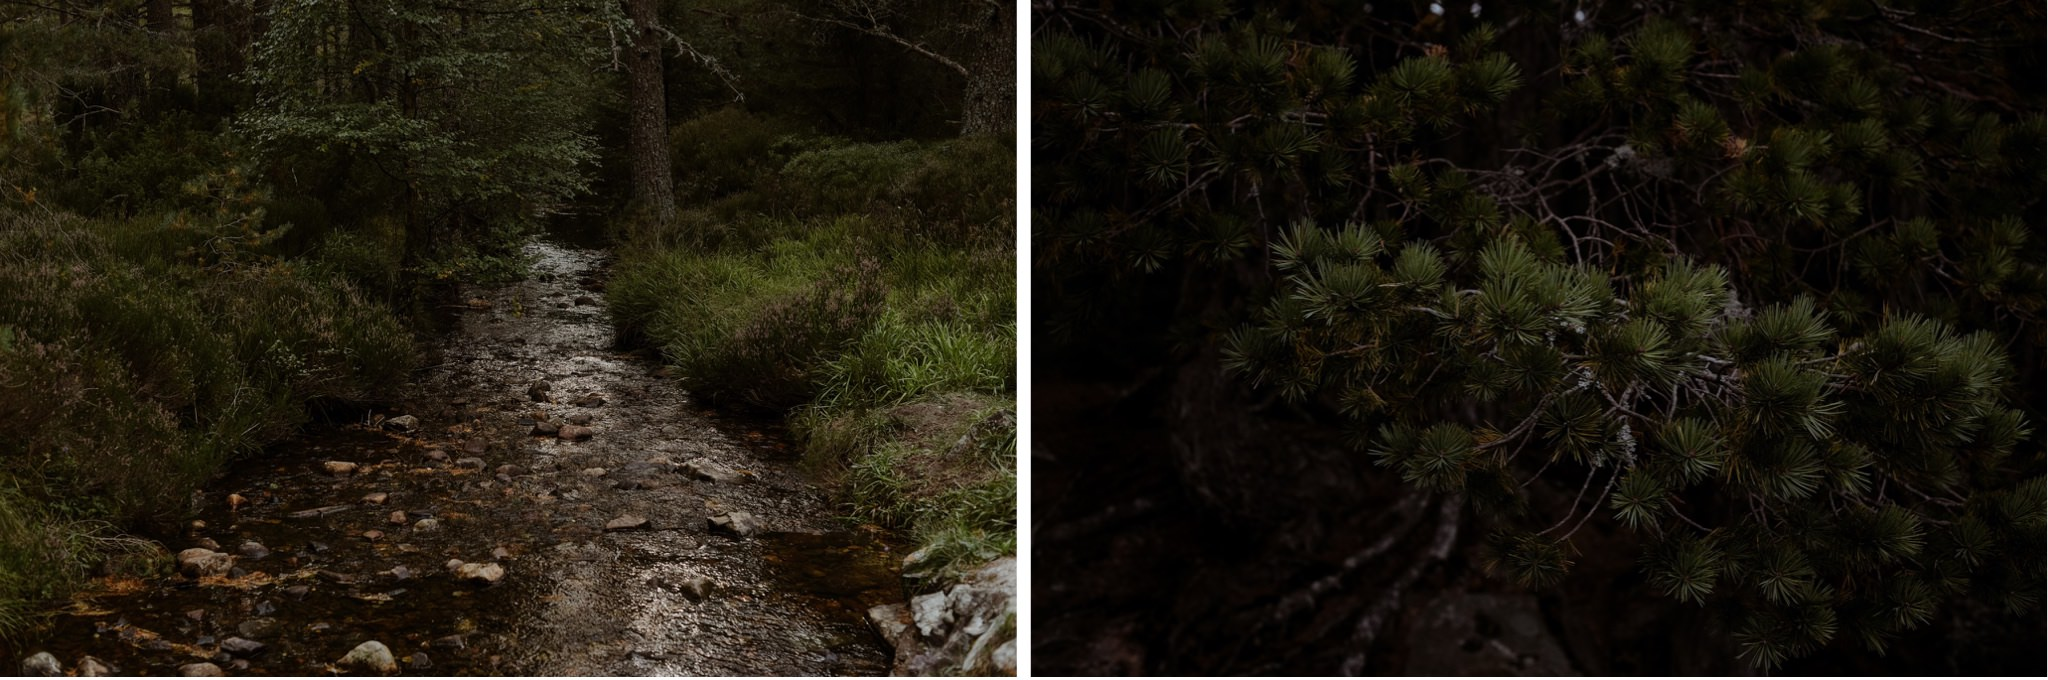 Forest river in the Cairngorms national Park